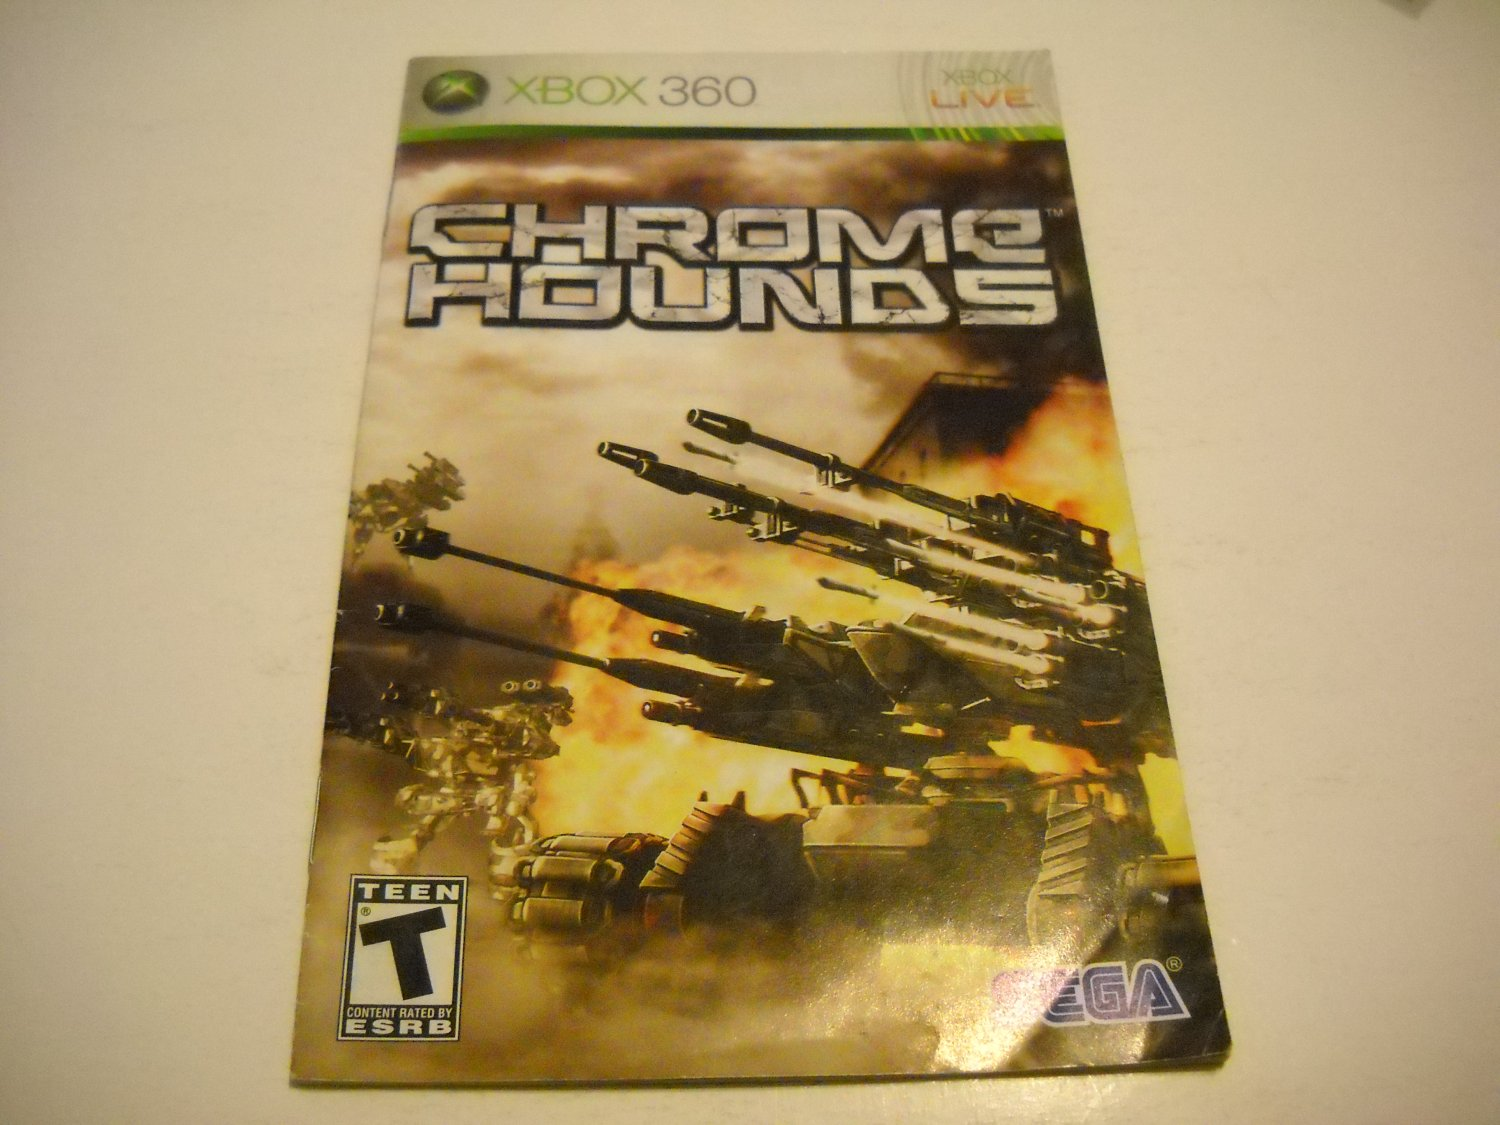 Manual ONLY ~  for Chrome Hounds   - Xbox 360 Instruction Booklet